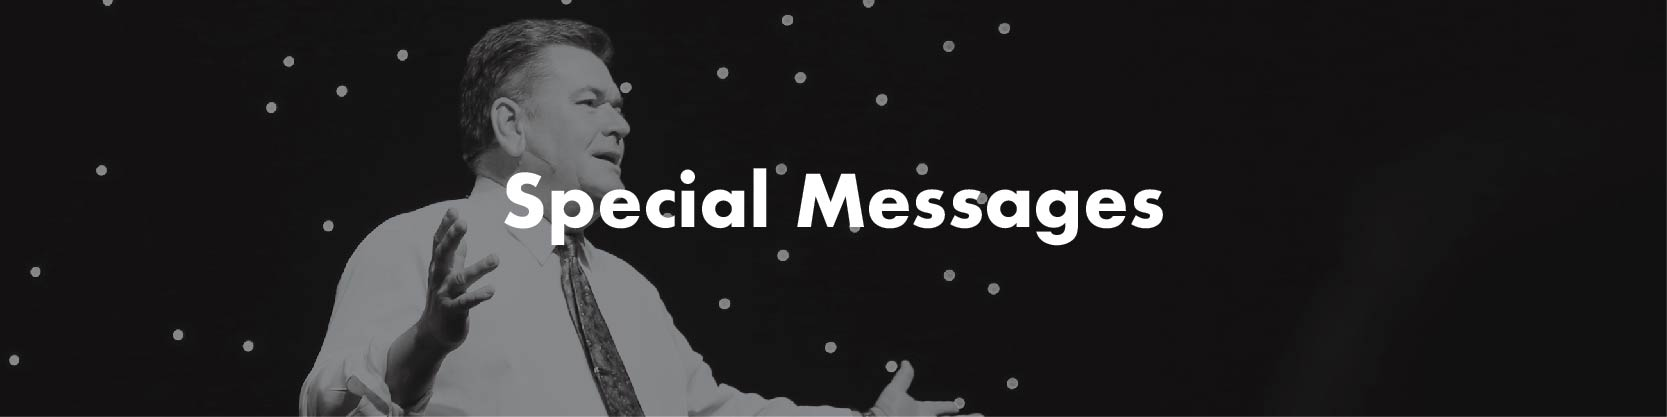 Special Messages Image